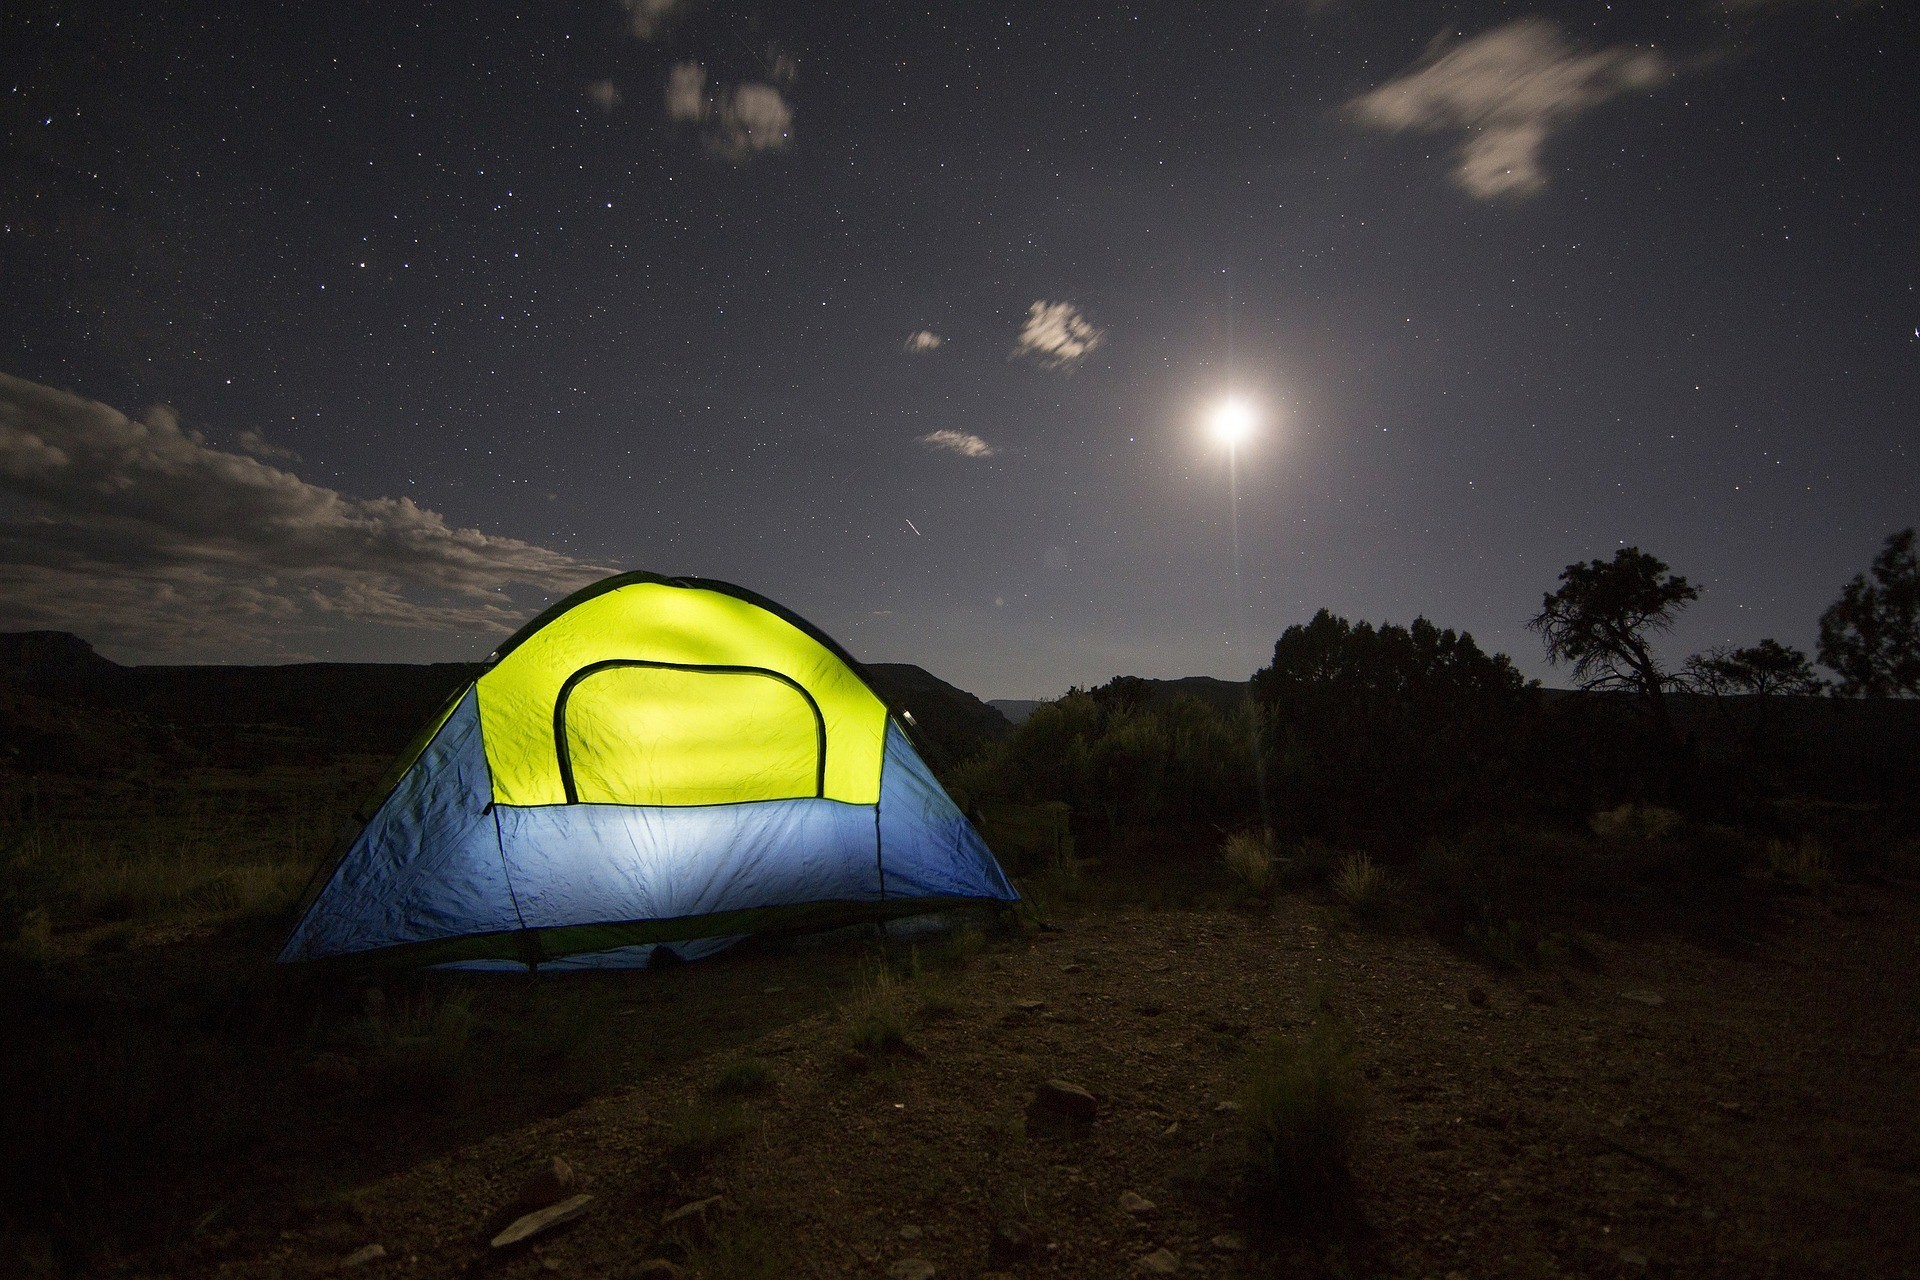 Camping tents in the mountain underneath the stars